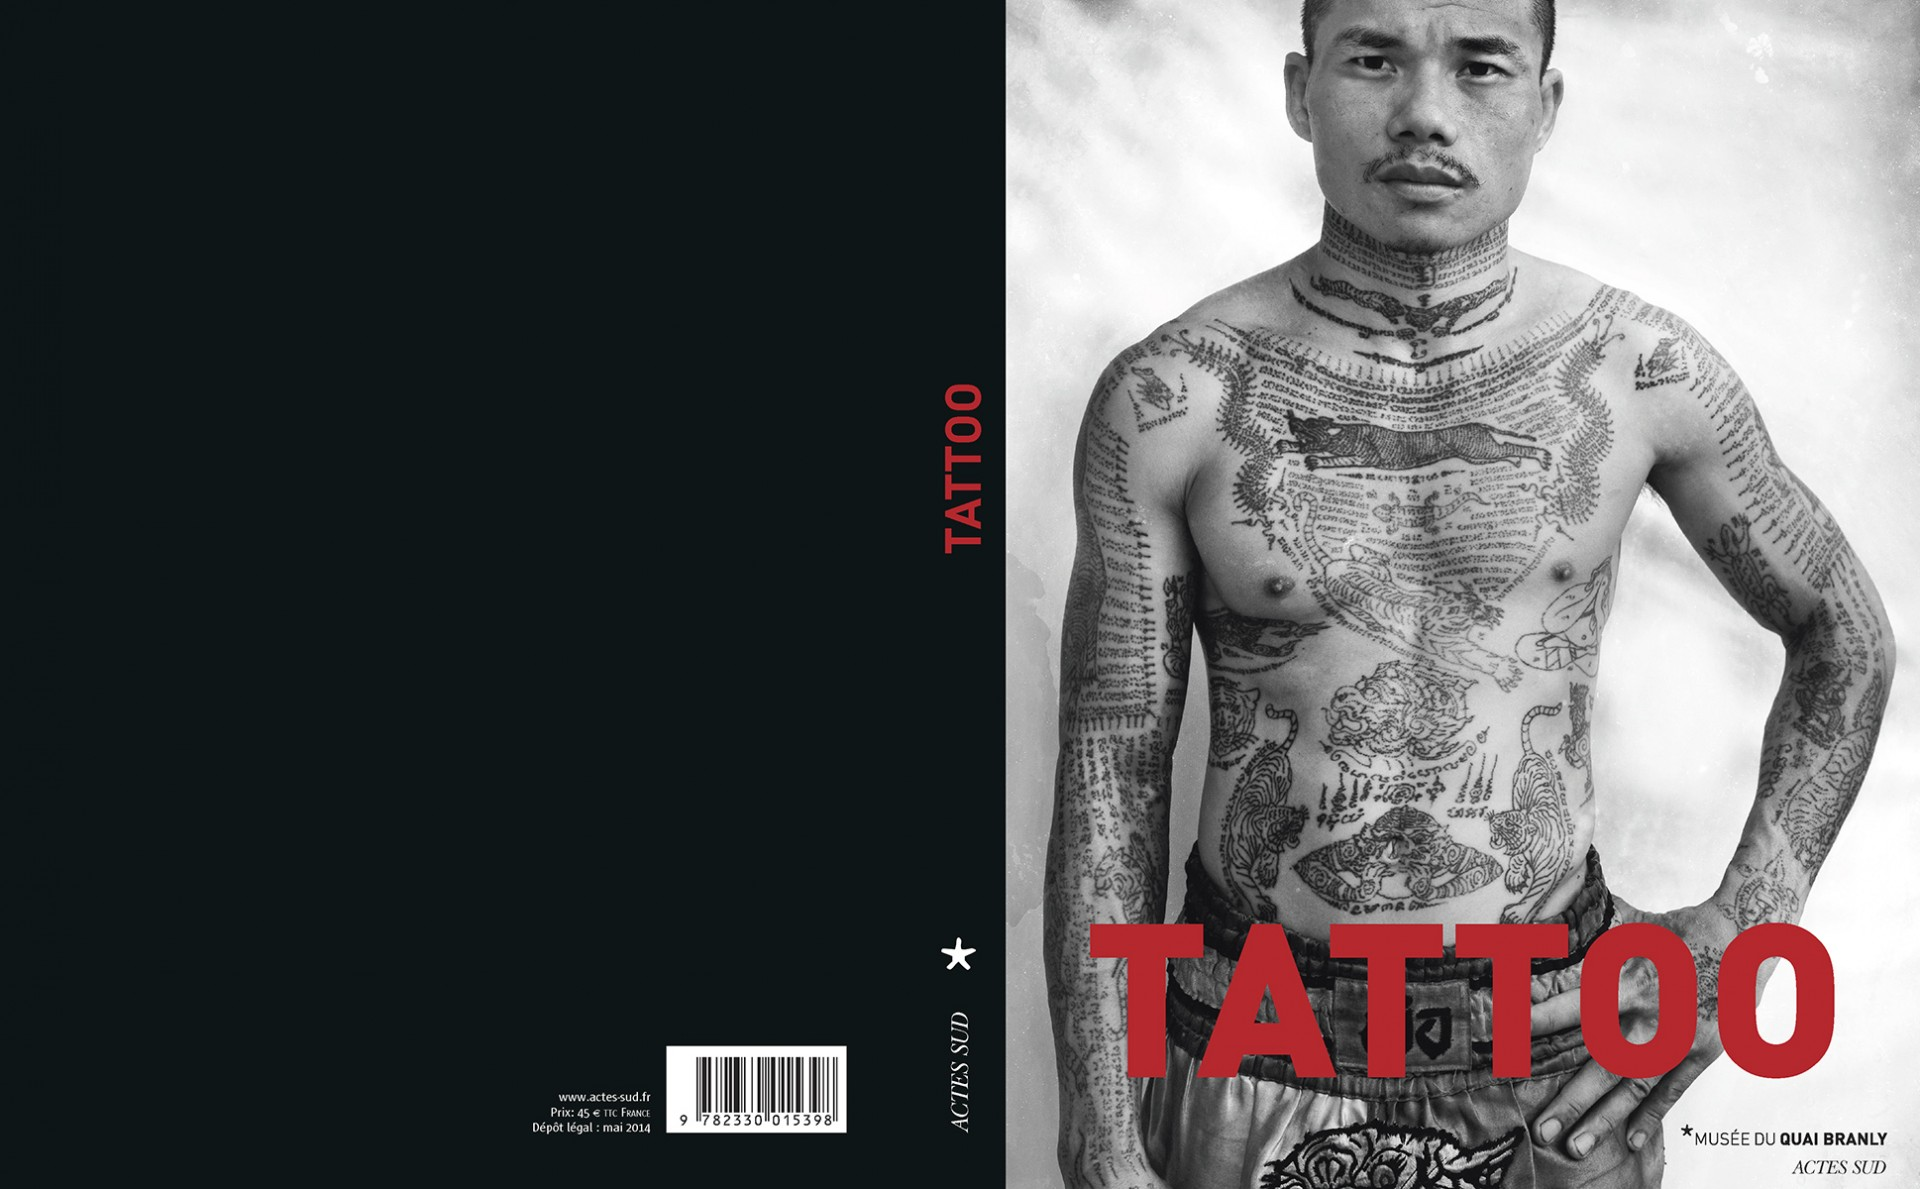 """Tattoo"" Musee du Quai Branly / Actes Sud"